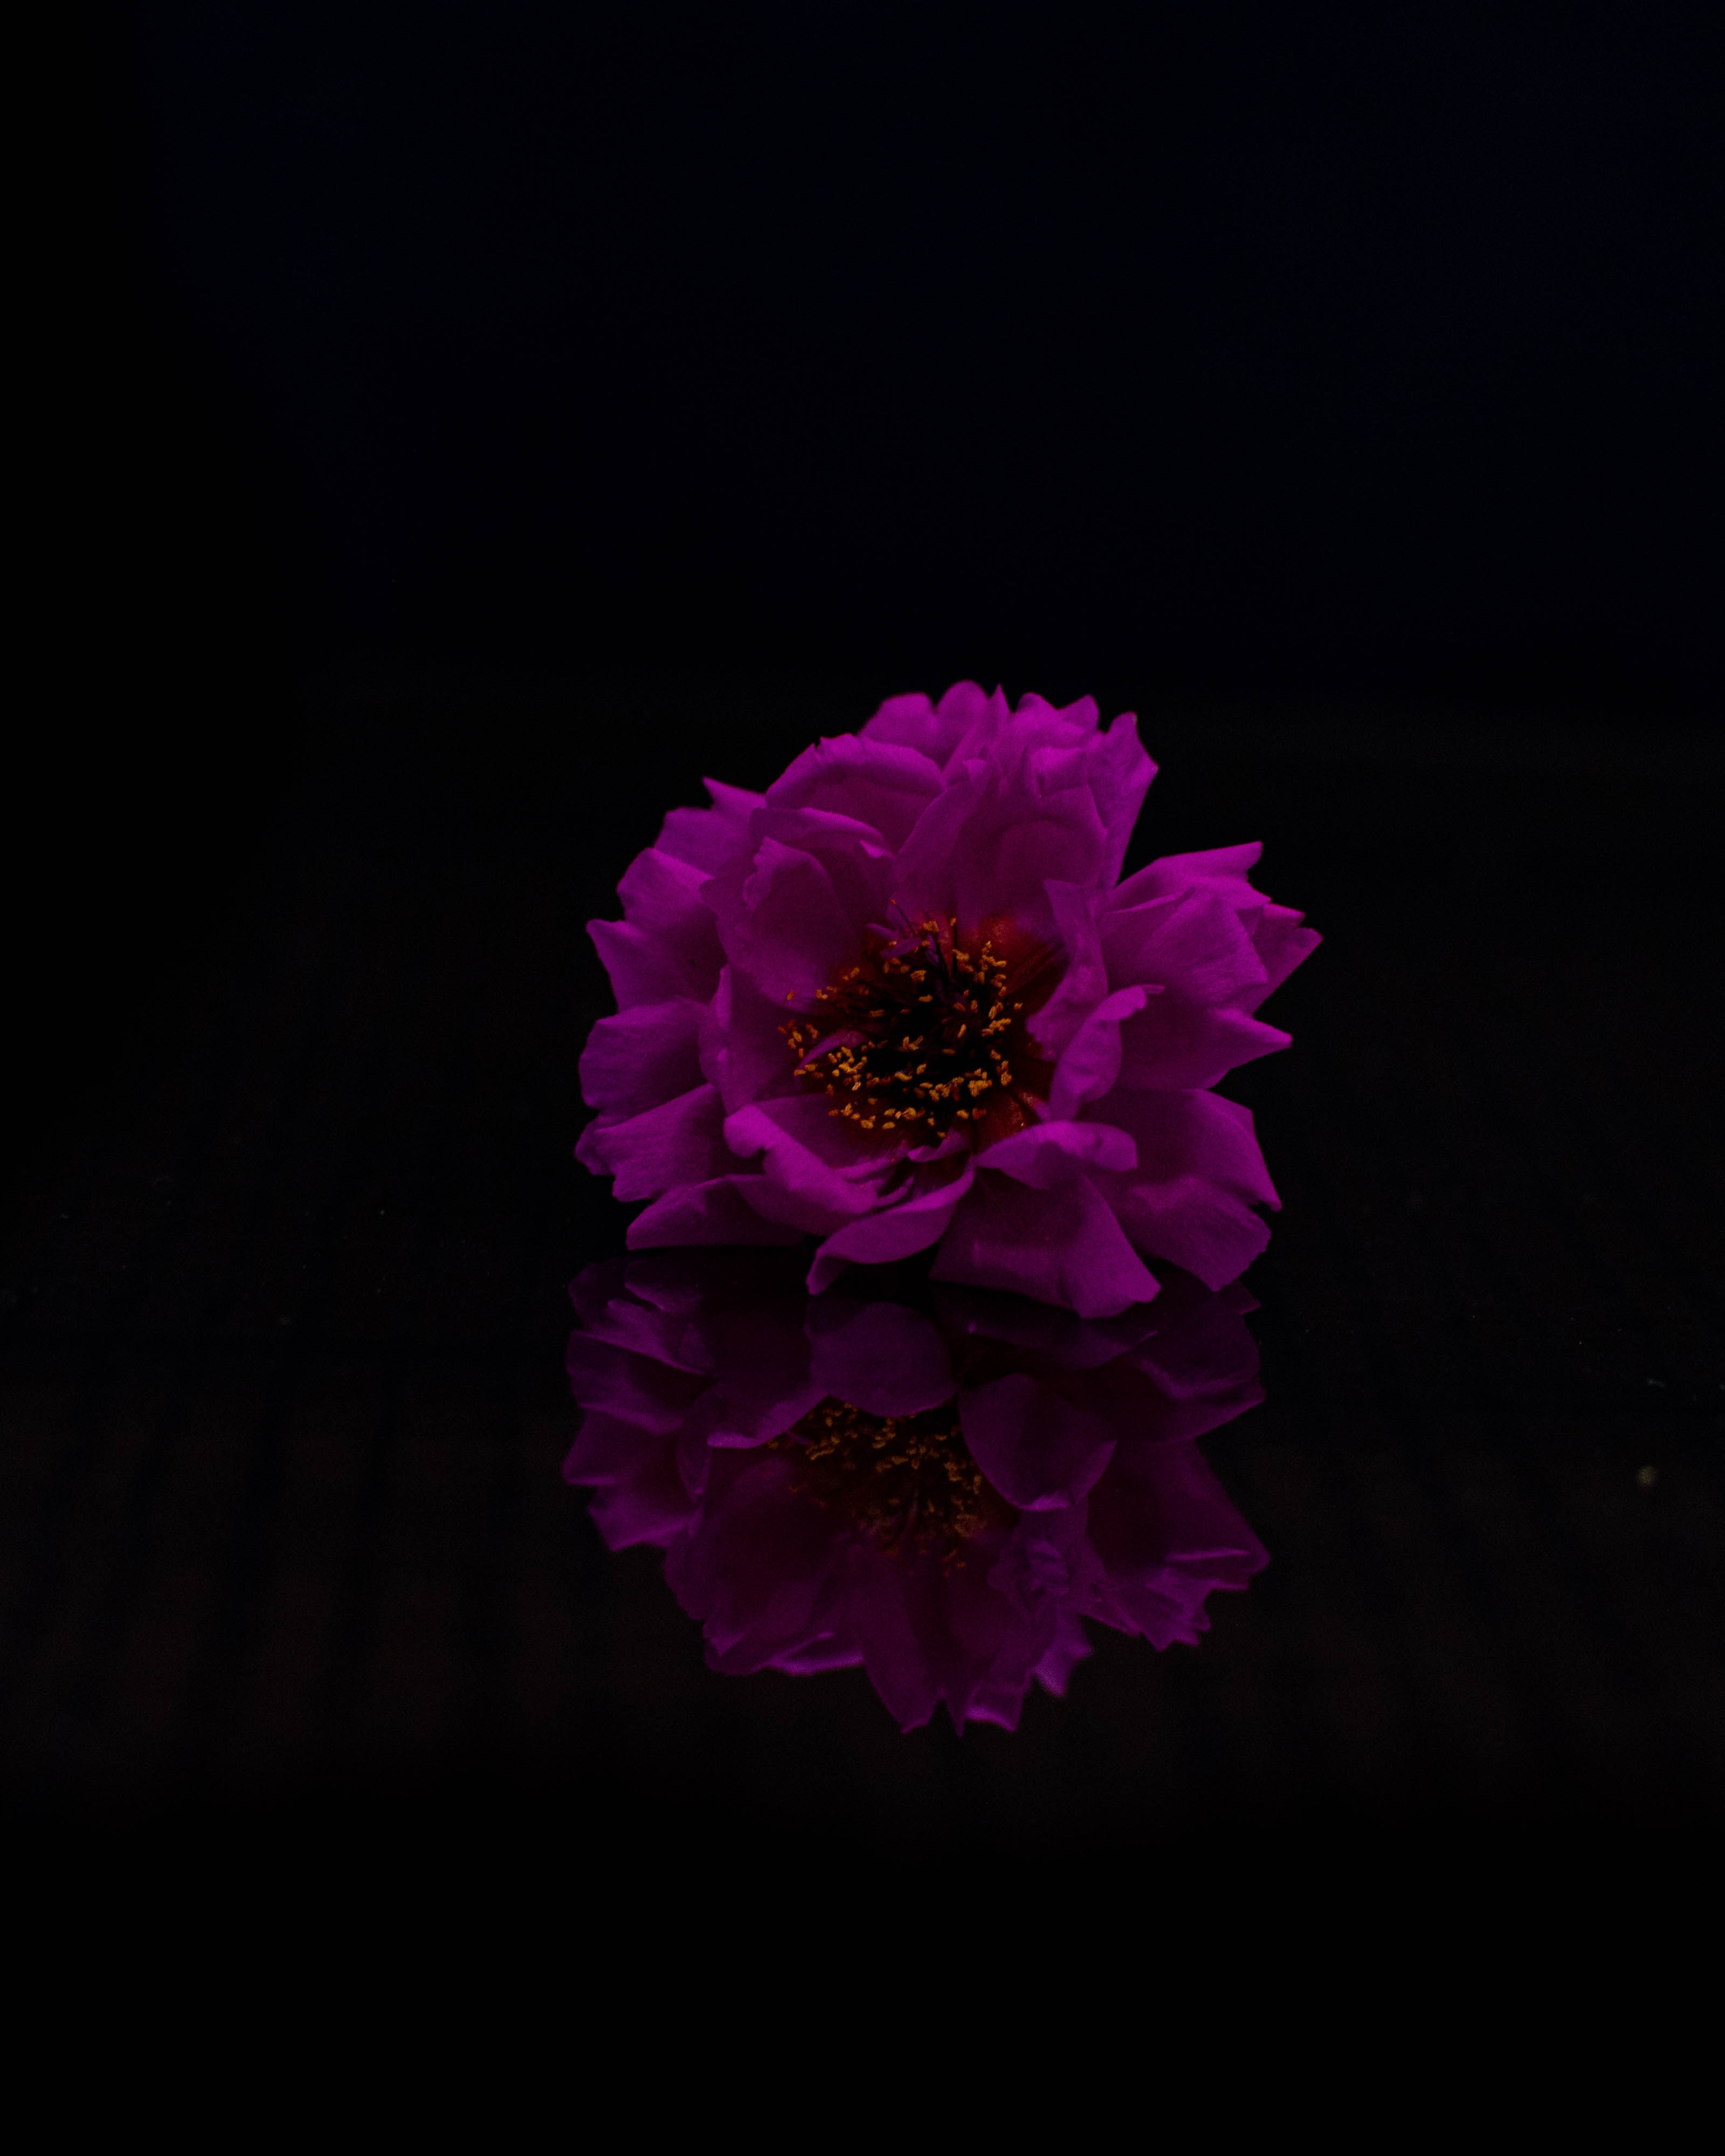 119523 Screensavers and Wallpapers Purple for phone. Download Purple, Flowers, Violet, Flower, Petals, Photoshop pictures for free